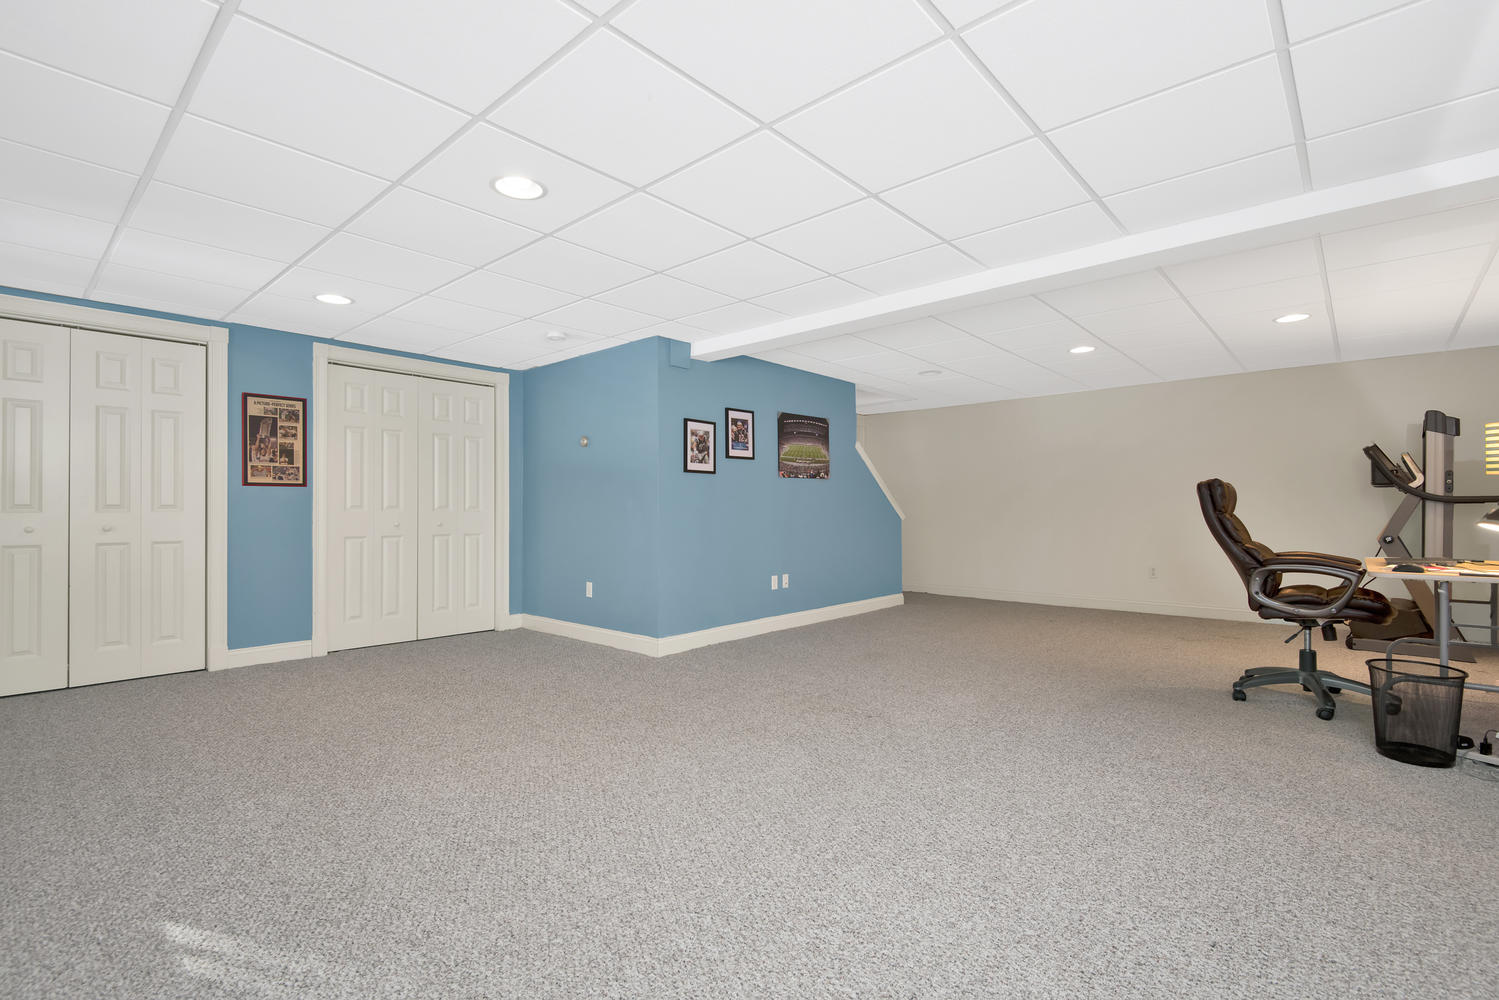 26 Titcomb Field Rd North-large-048-55-Finished Basement-1499x1000-72dpi.jpg